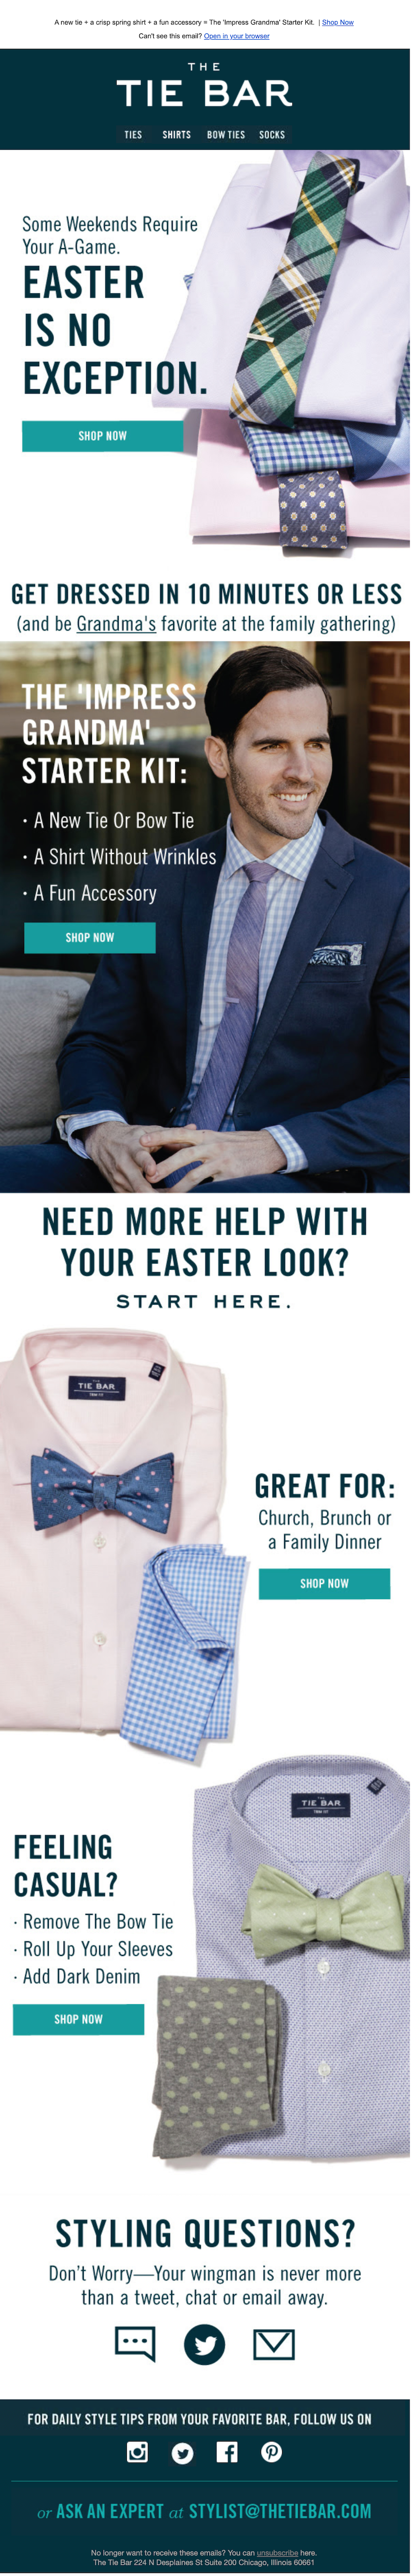 easter email ideas